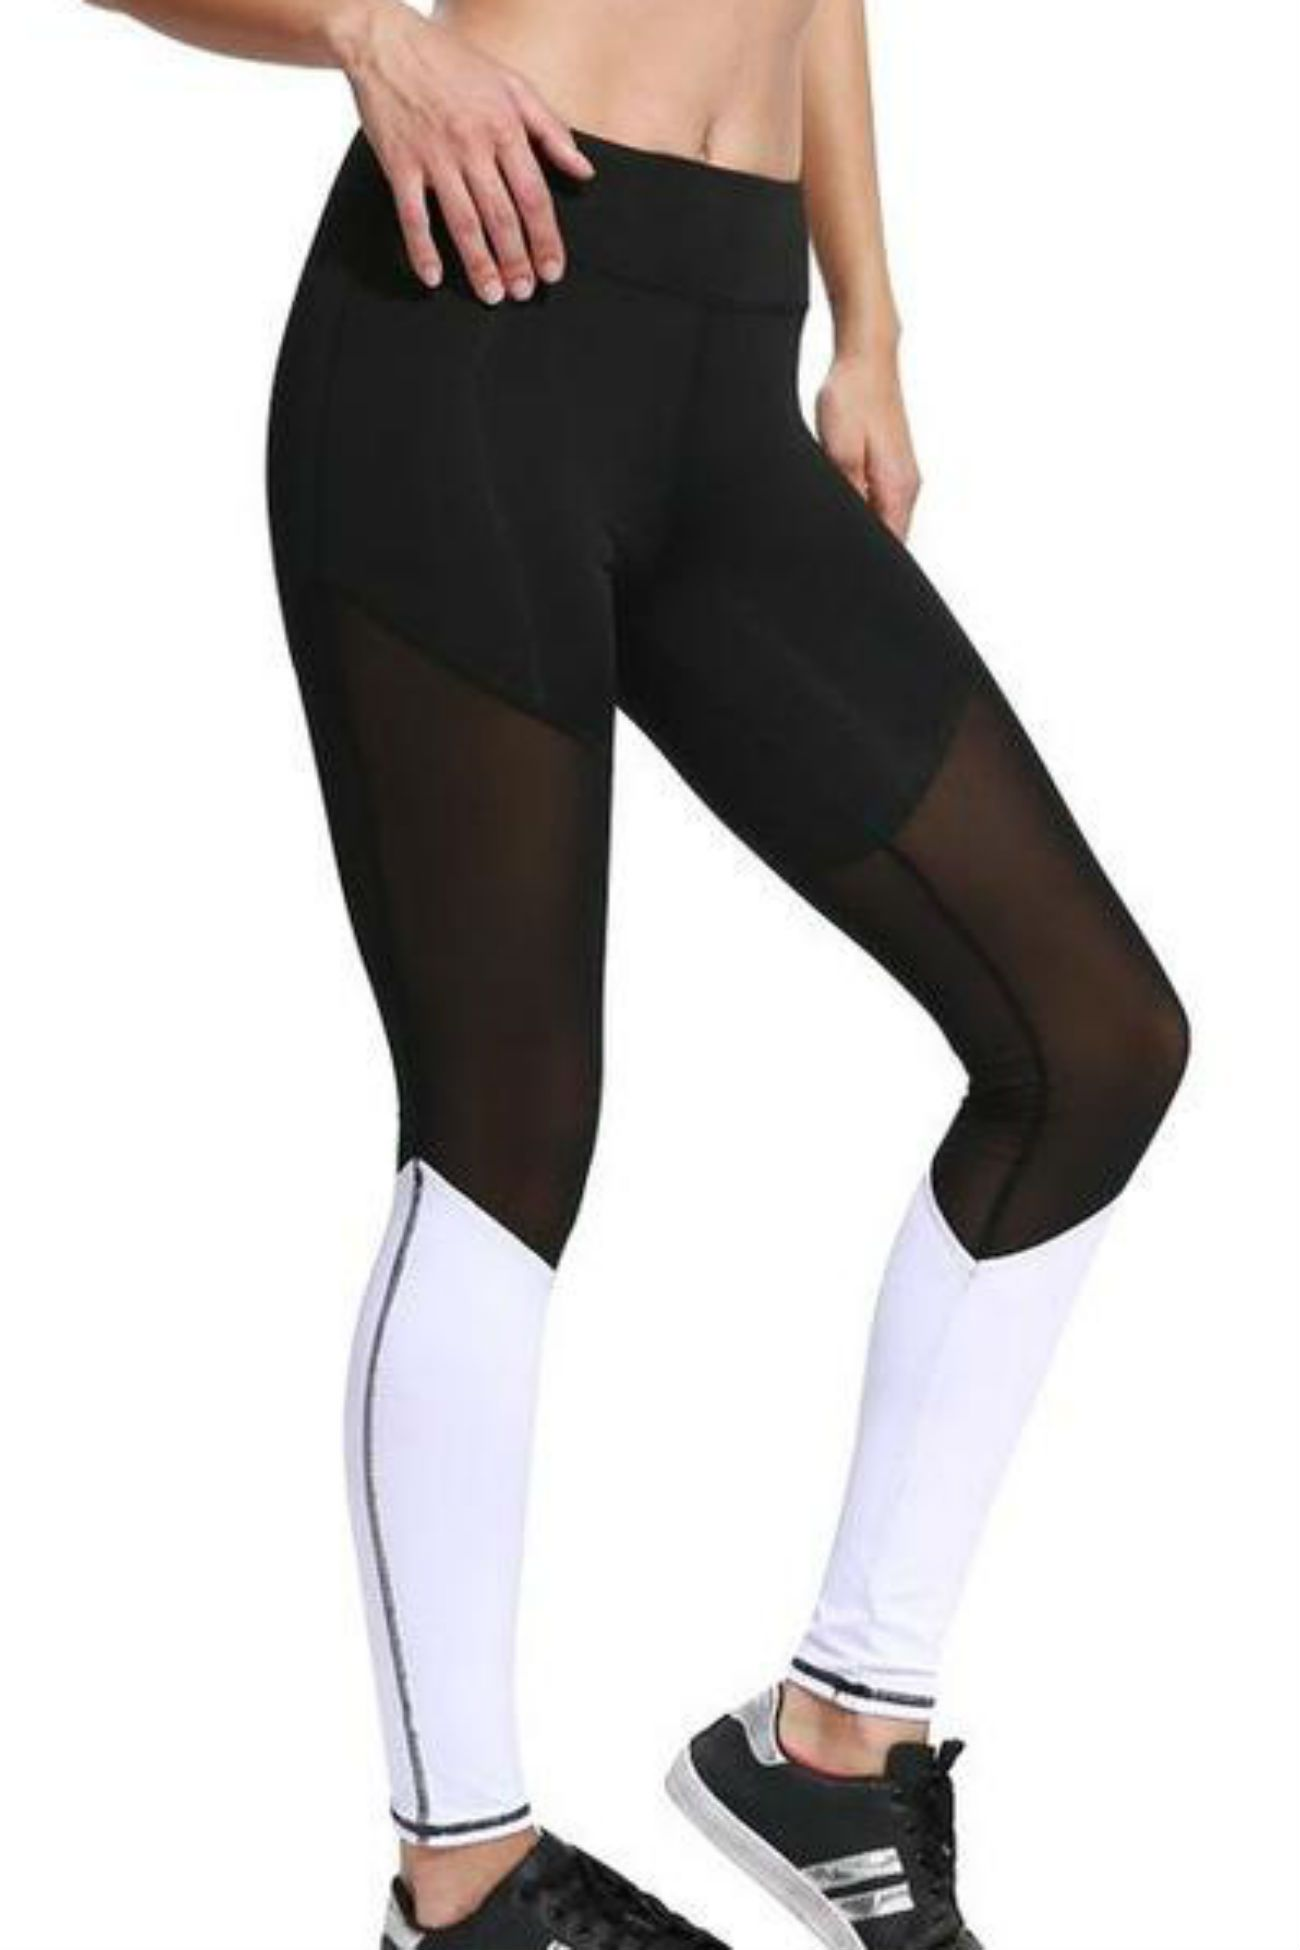 Triple Threat Mesh Leggings - Muscle Fitness Factory